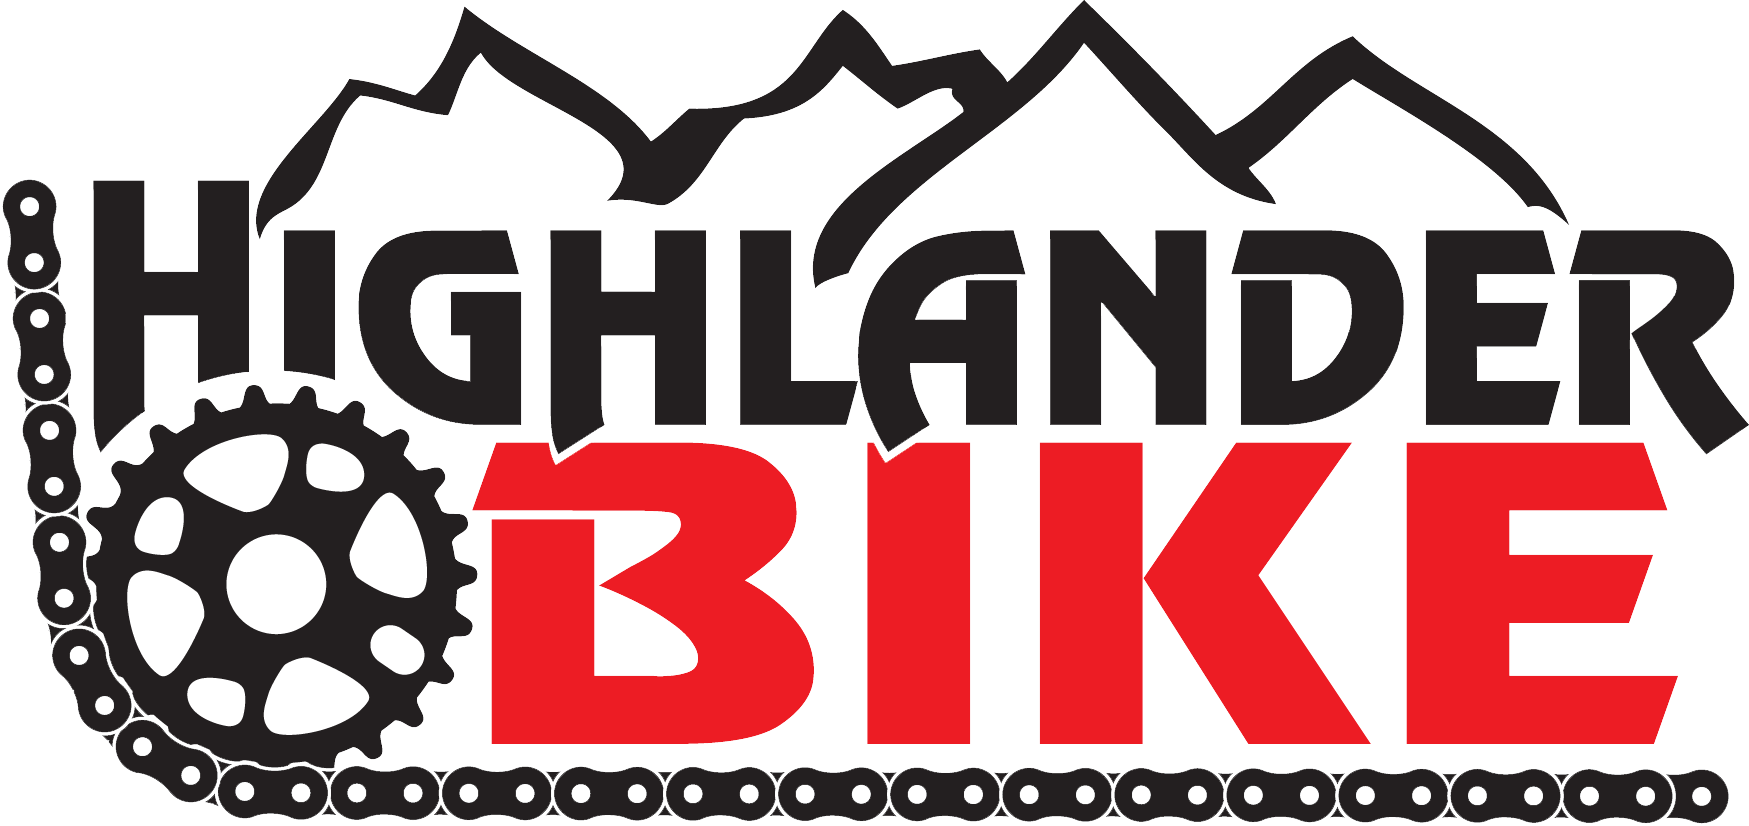 Highlander Bike Shop